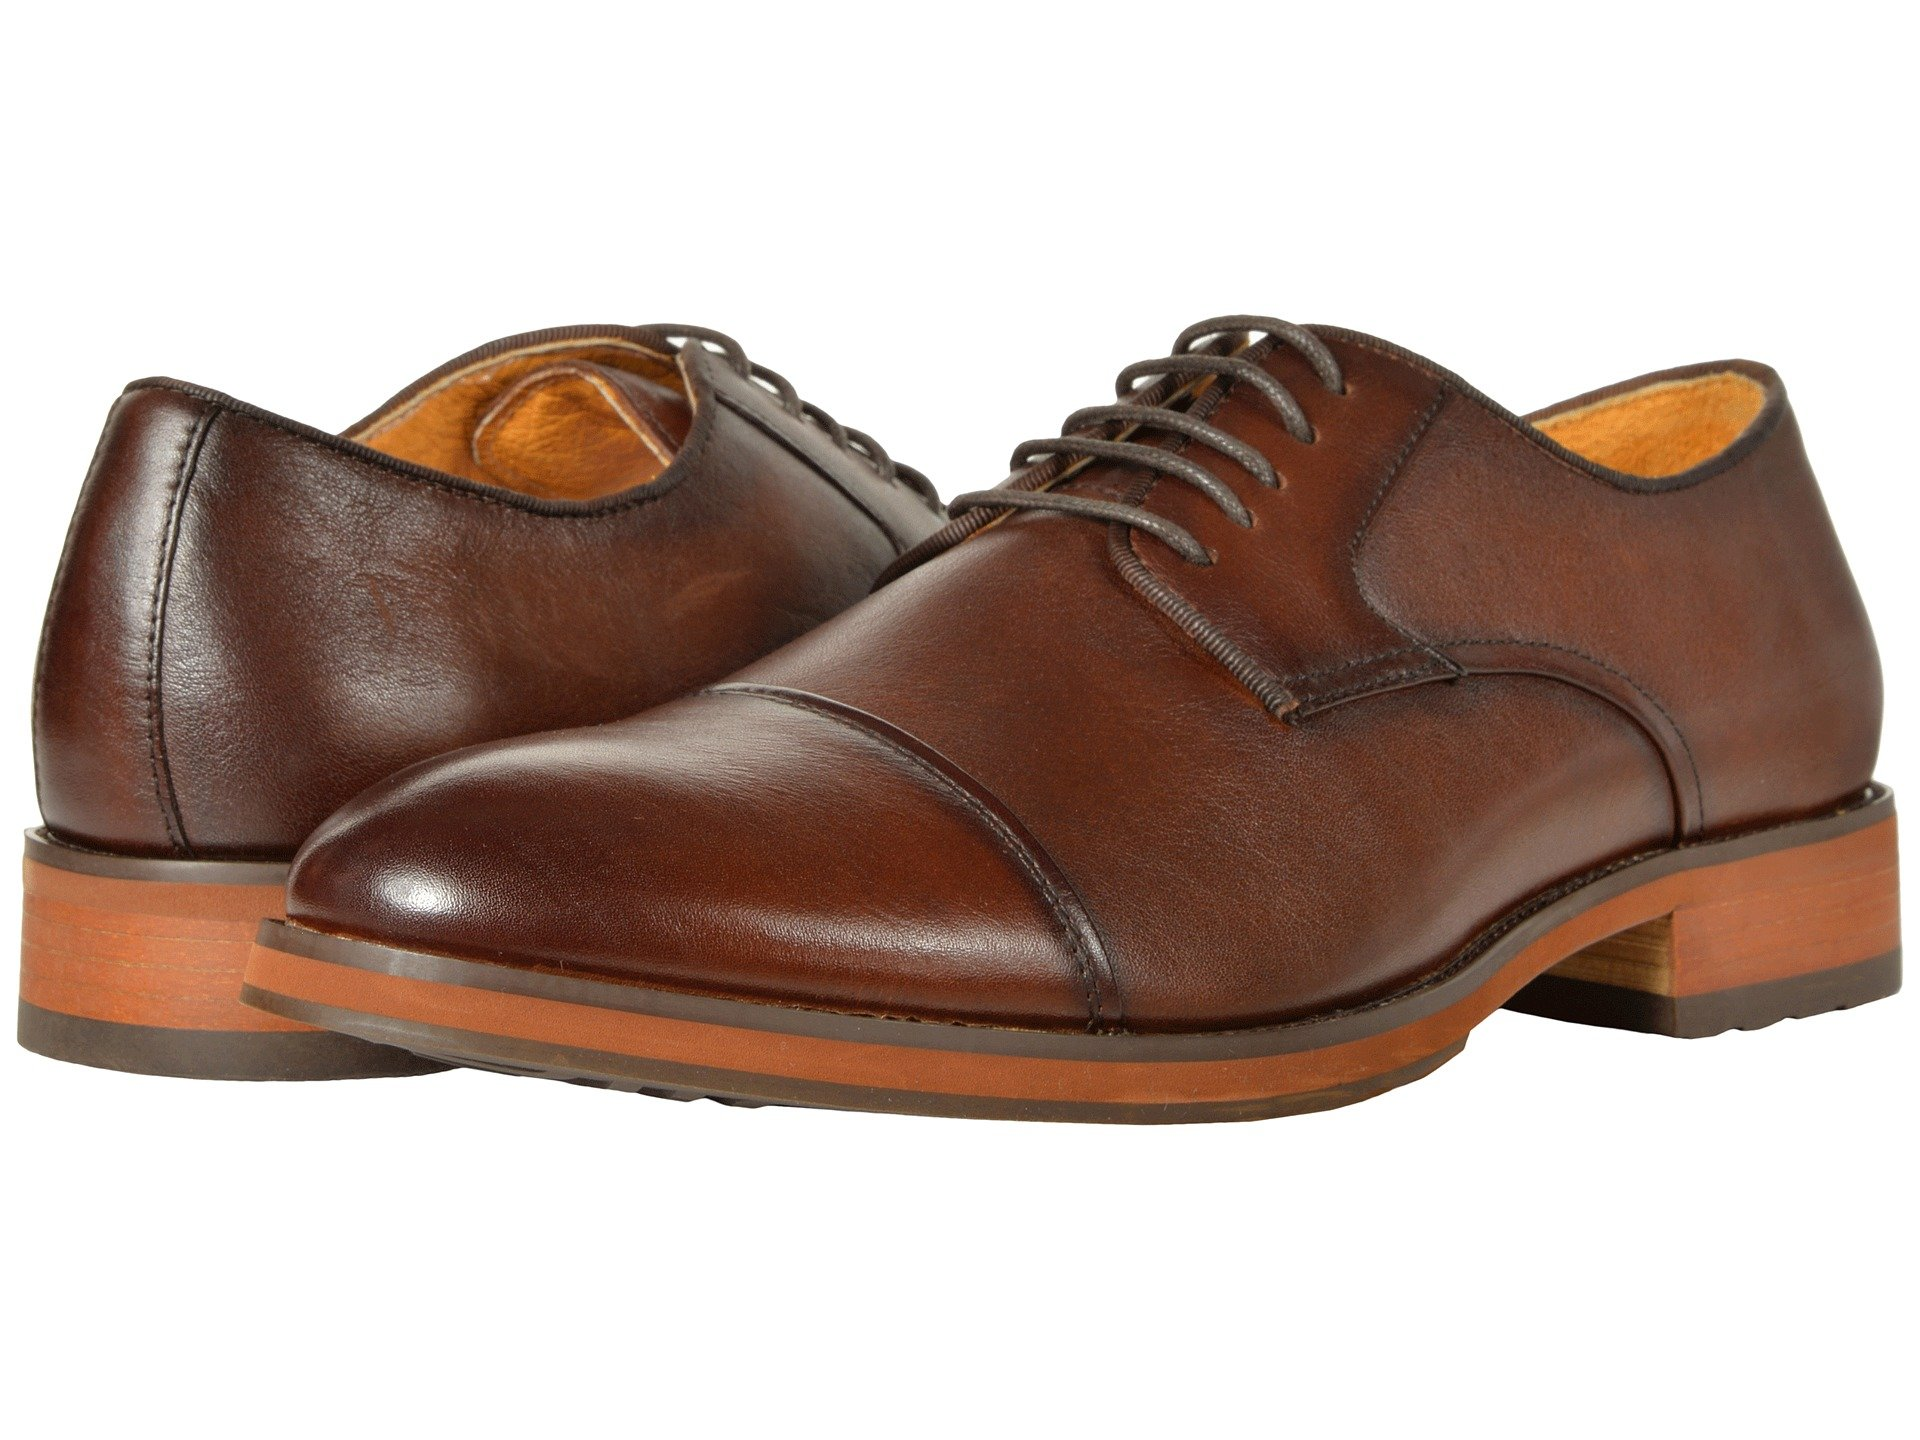 75613231d258 Men s Brown Dress Shoes  The Ultimate Guide